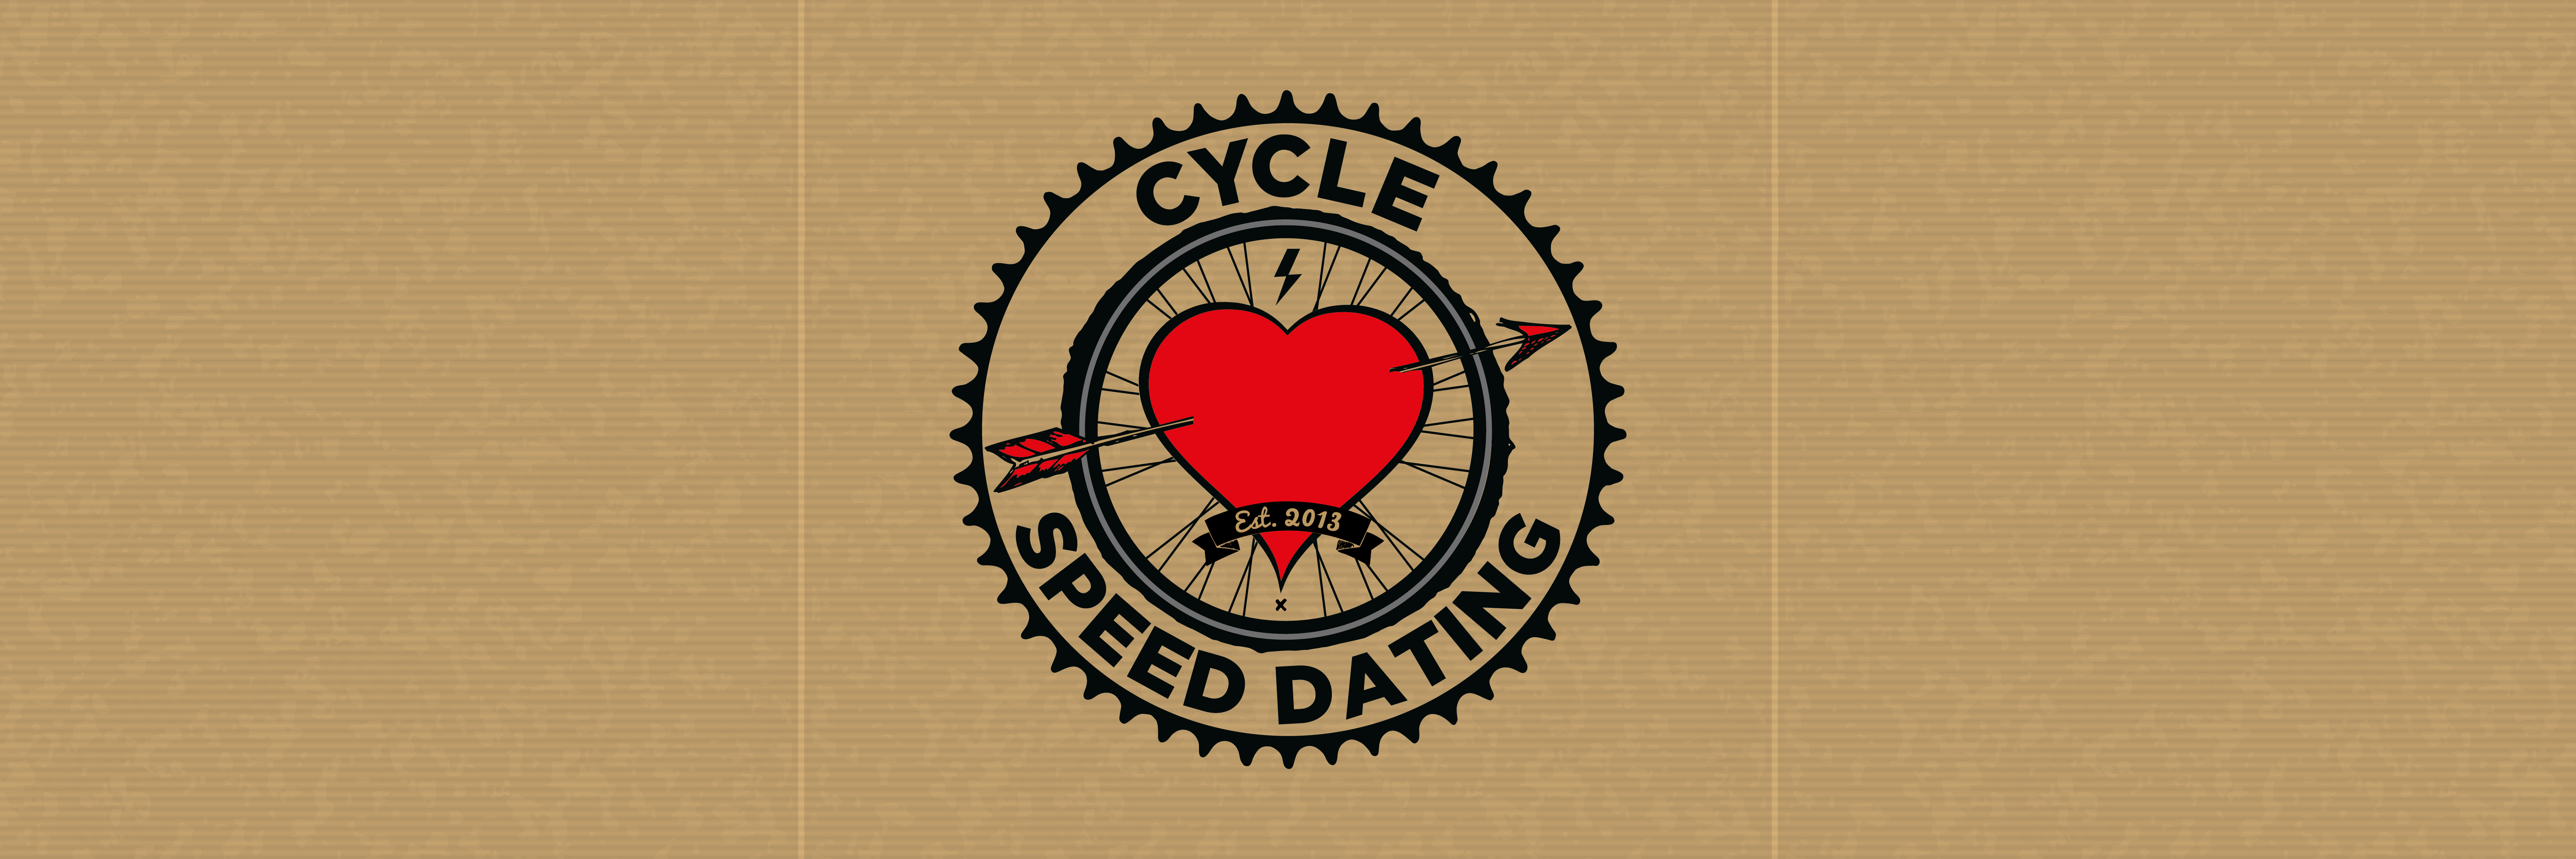 cycle speed dating edinburgh Event details date: 18th june 2016 19:30 – 21:30 venue: the argyle bar & cellar monkey categories: other cycle speed dating summer is.